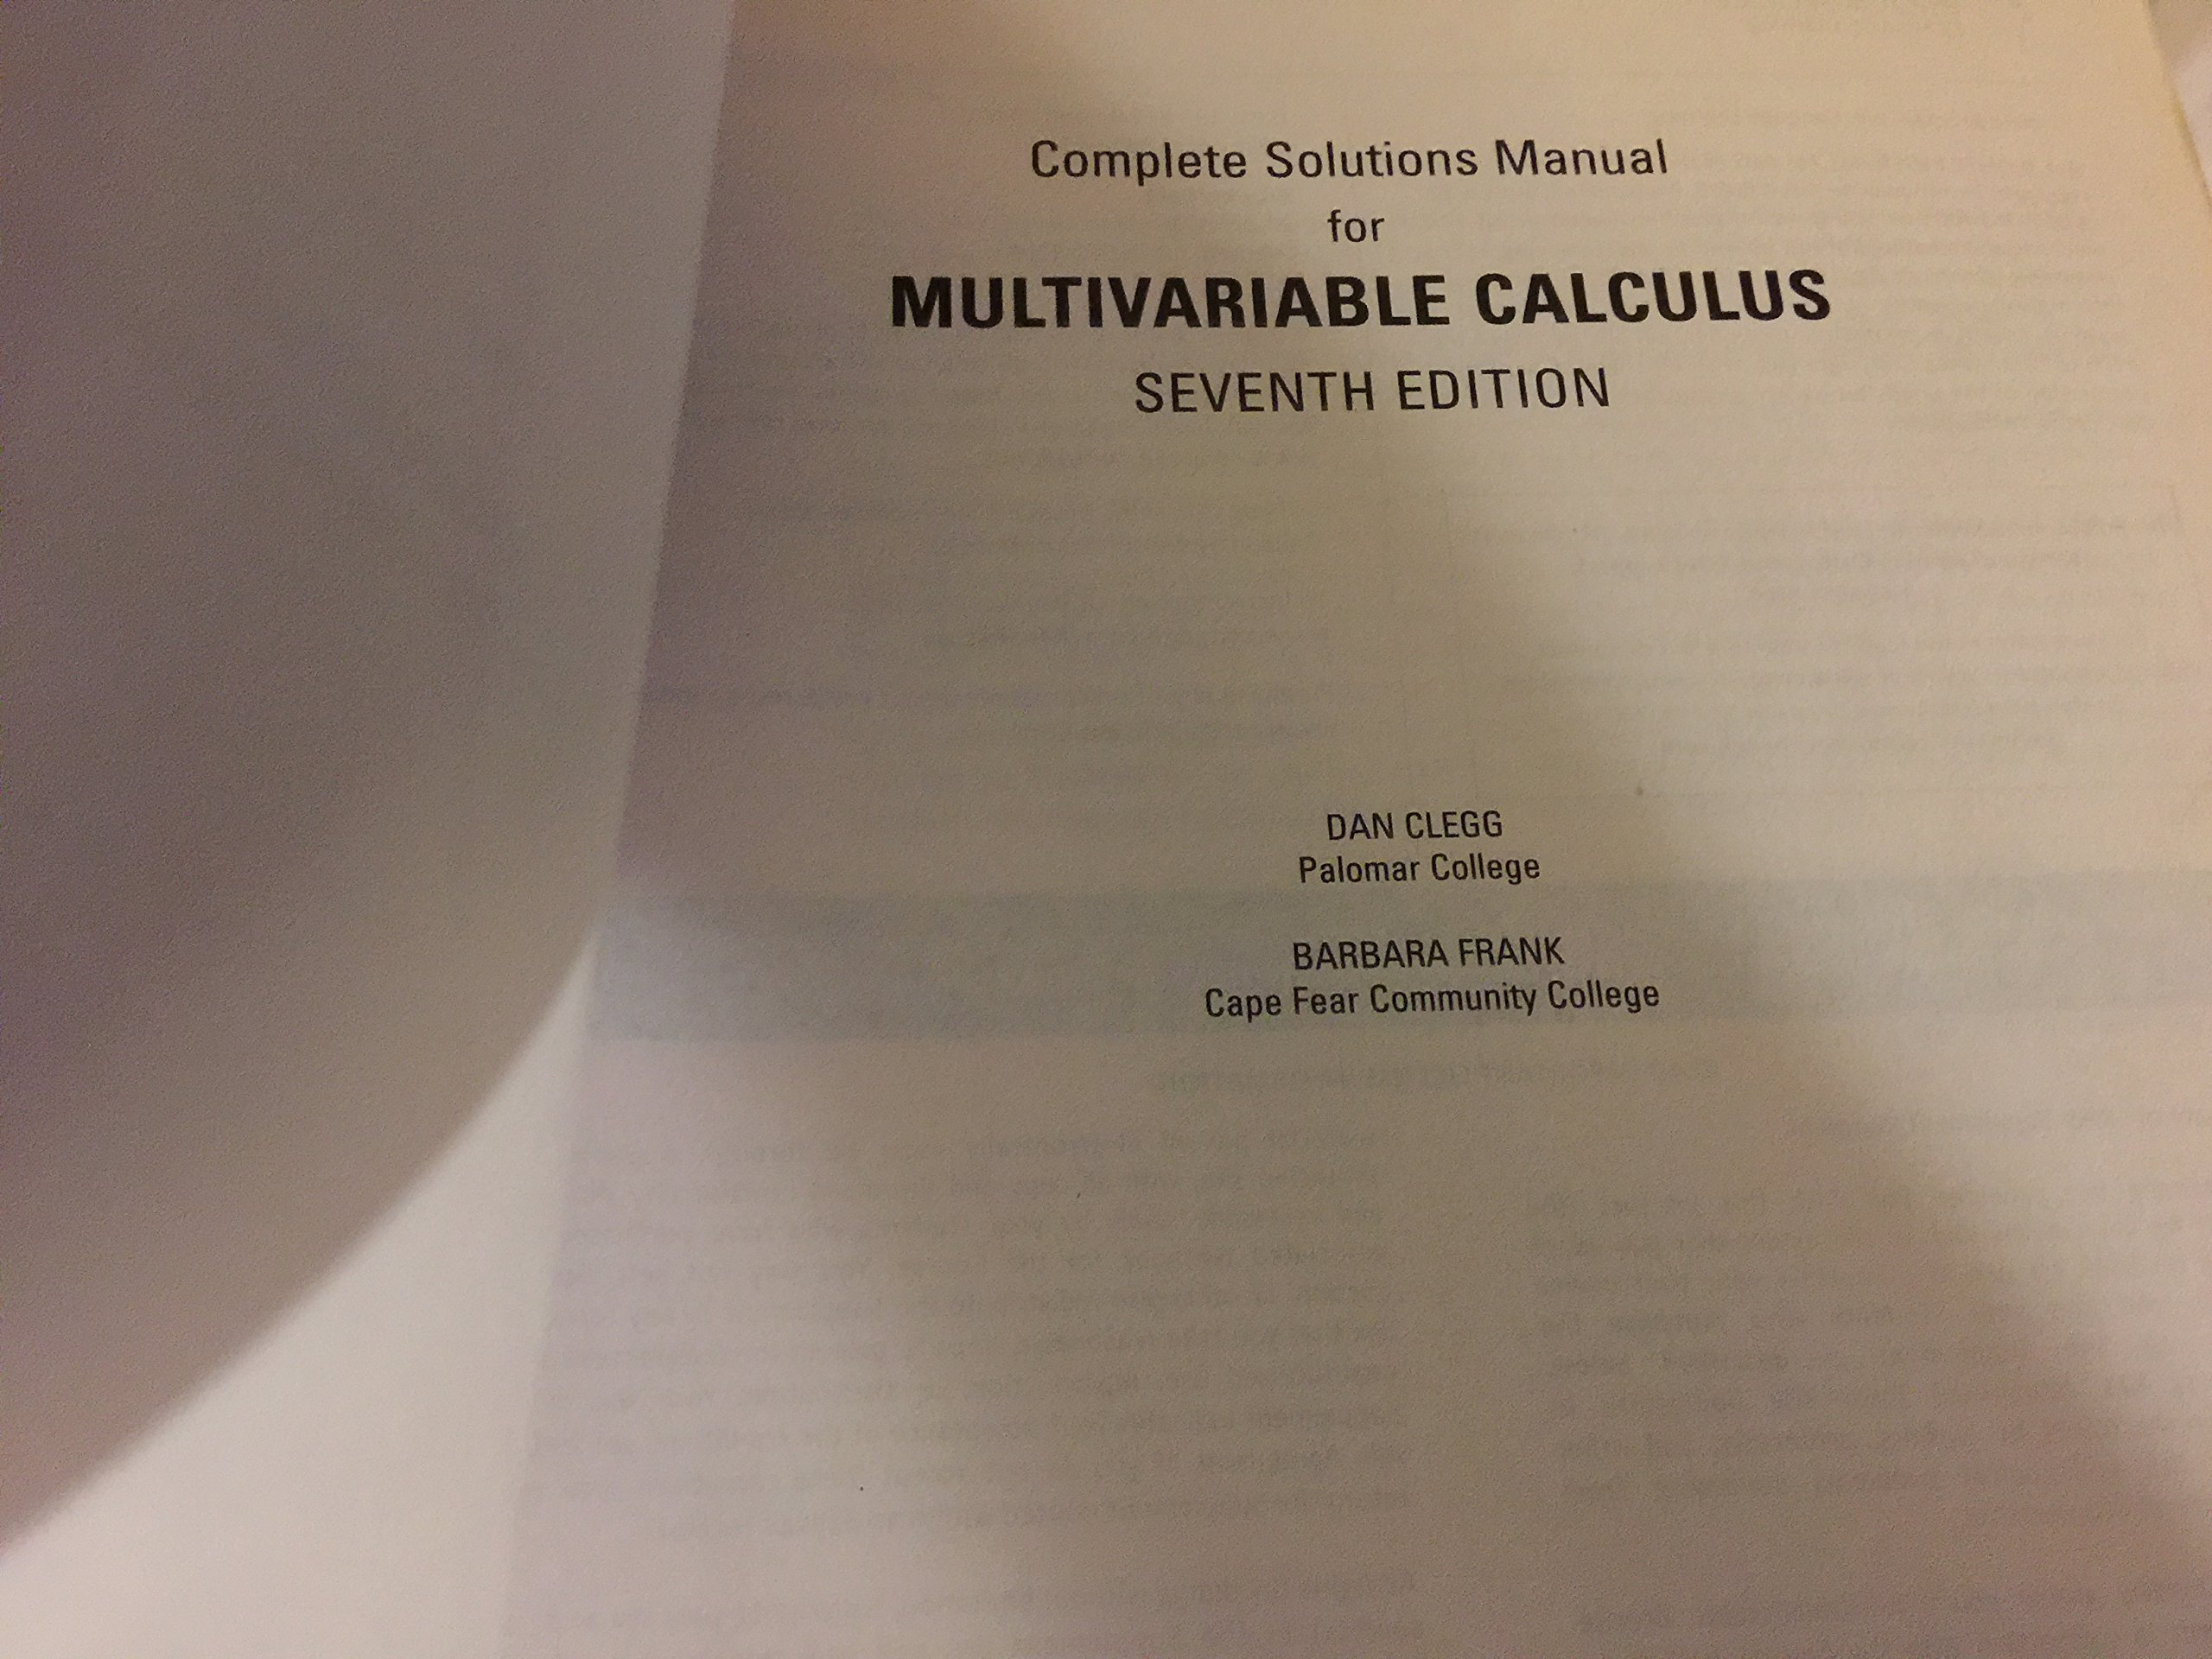 COMPLETE Solutions Manual for Multivariable Calculus, 7th Edition by James  Stewart: James Stewart: 9780328693566: Amazon.com: Books